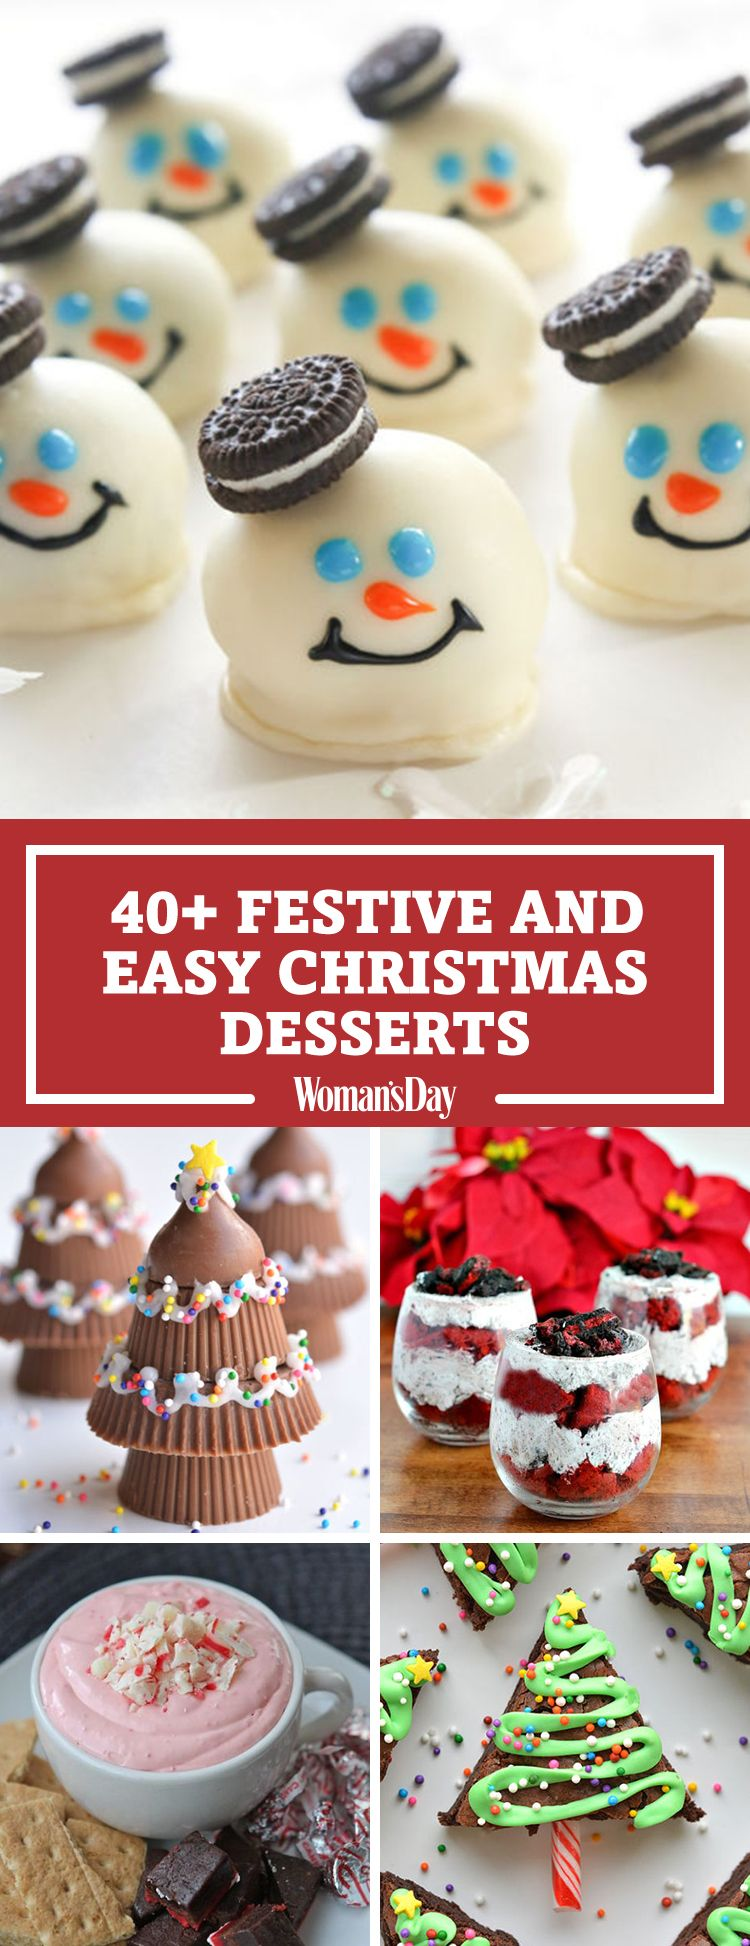 60+ Irresistible Christmas Desserts to Serve This Holiday